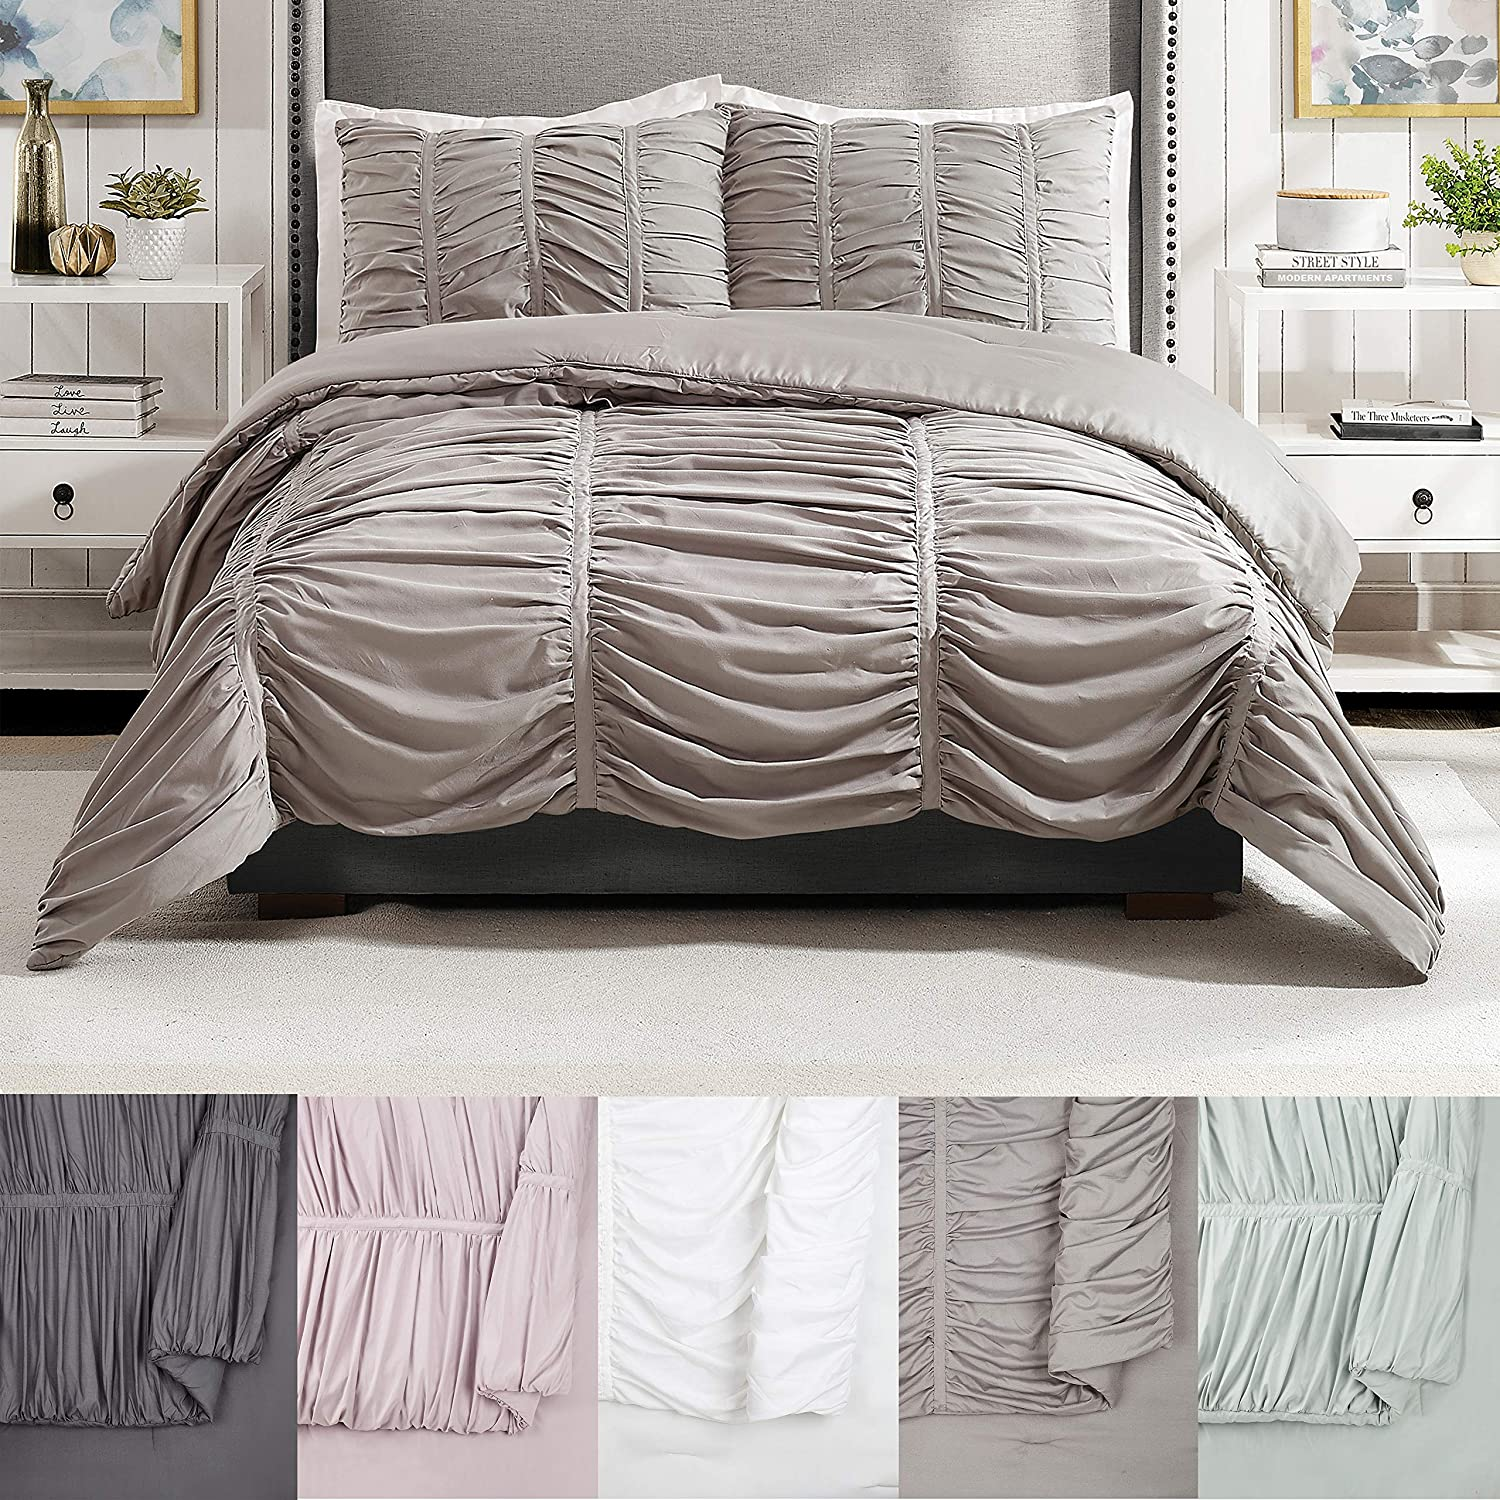 Modern Max 42% OFF Heirloom Emily Texture Light 3-Piece Set Large special price Comforter Gray